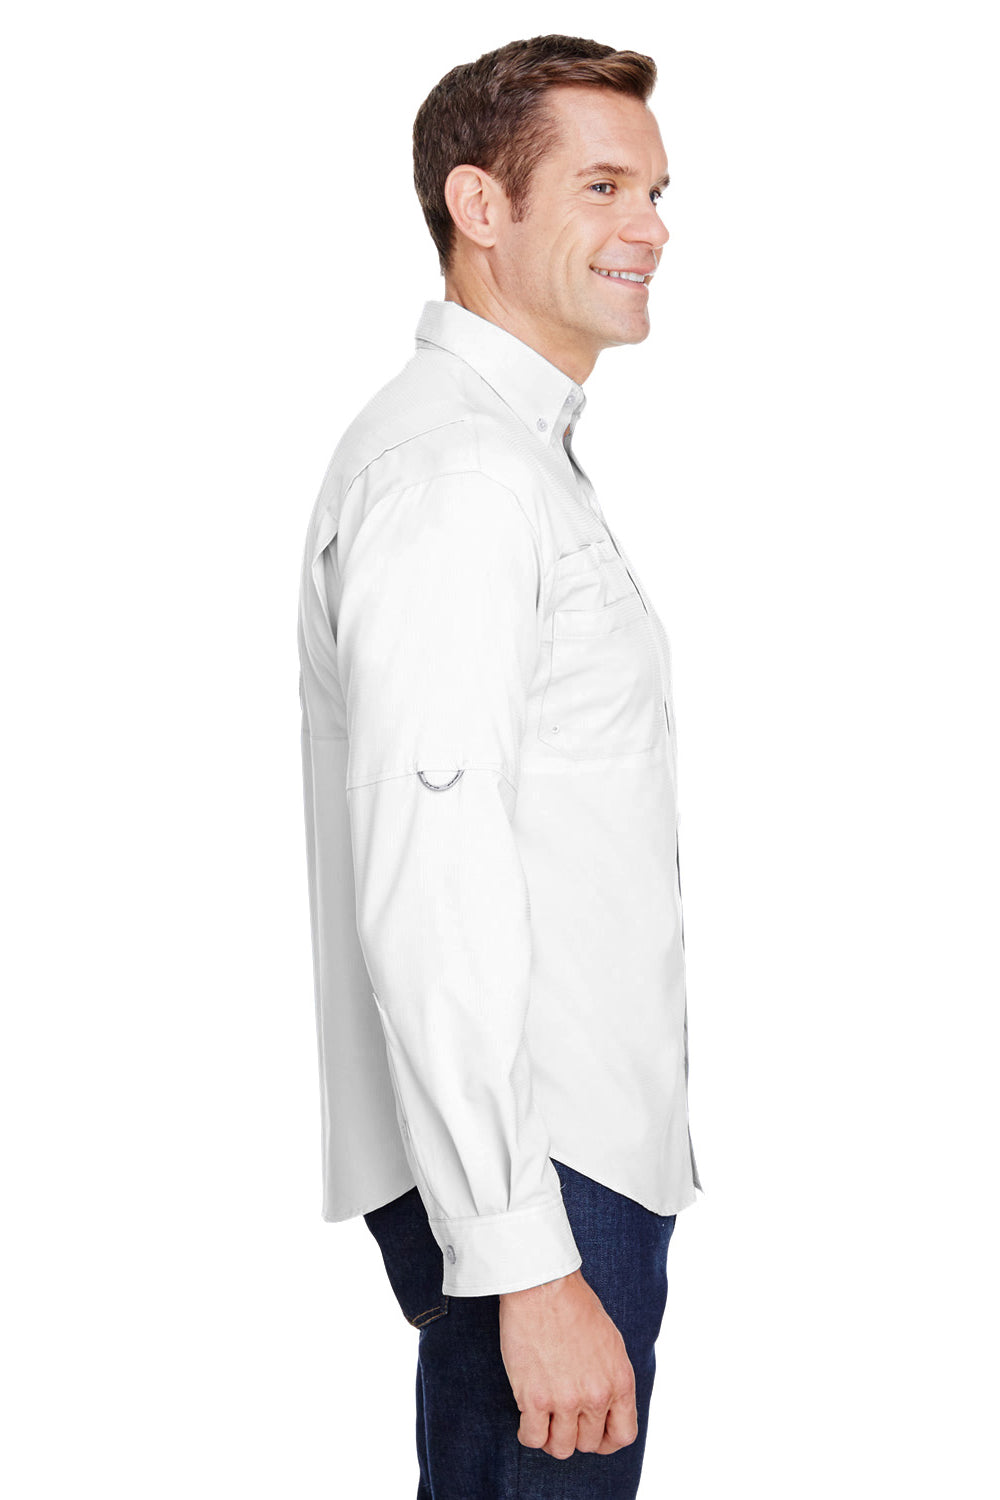 Columbia 7253 Mens Tamiami II Moisture Wicking Long Sleeve Button Down Shirt w/ Double Pockets White Side